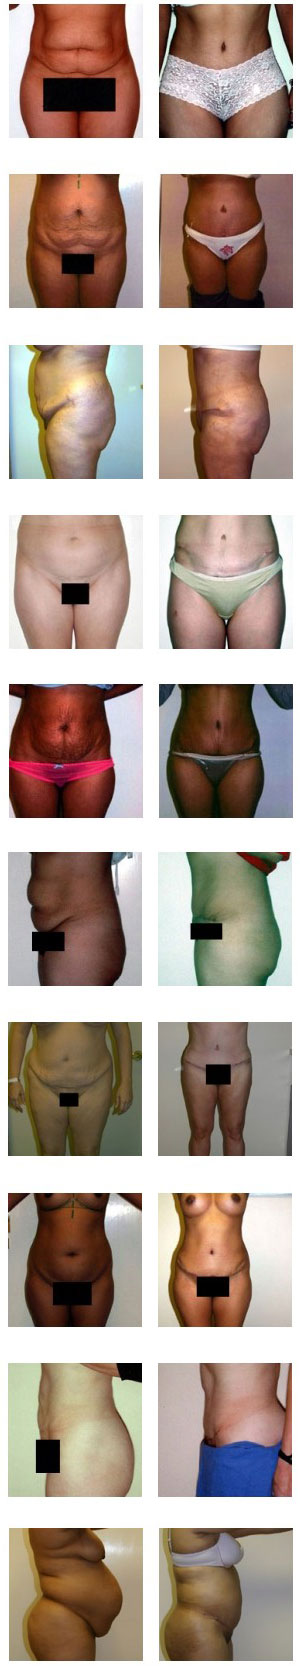 abdominoplasty-before-after